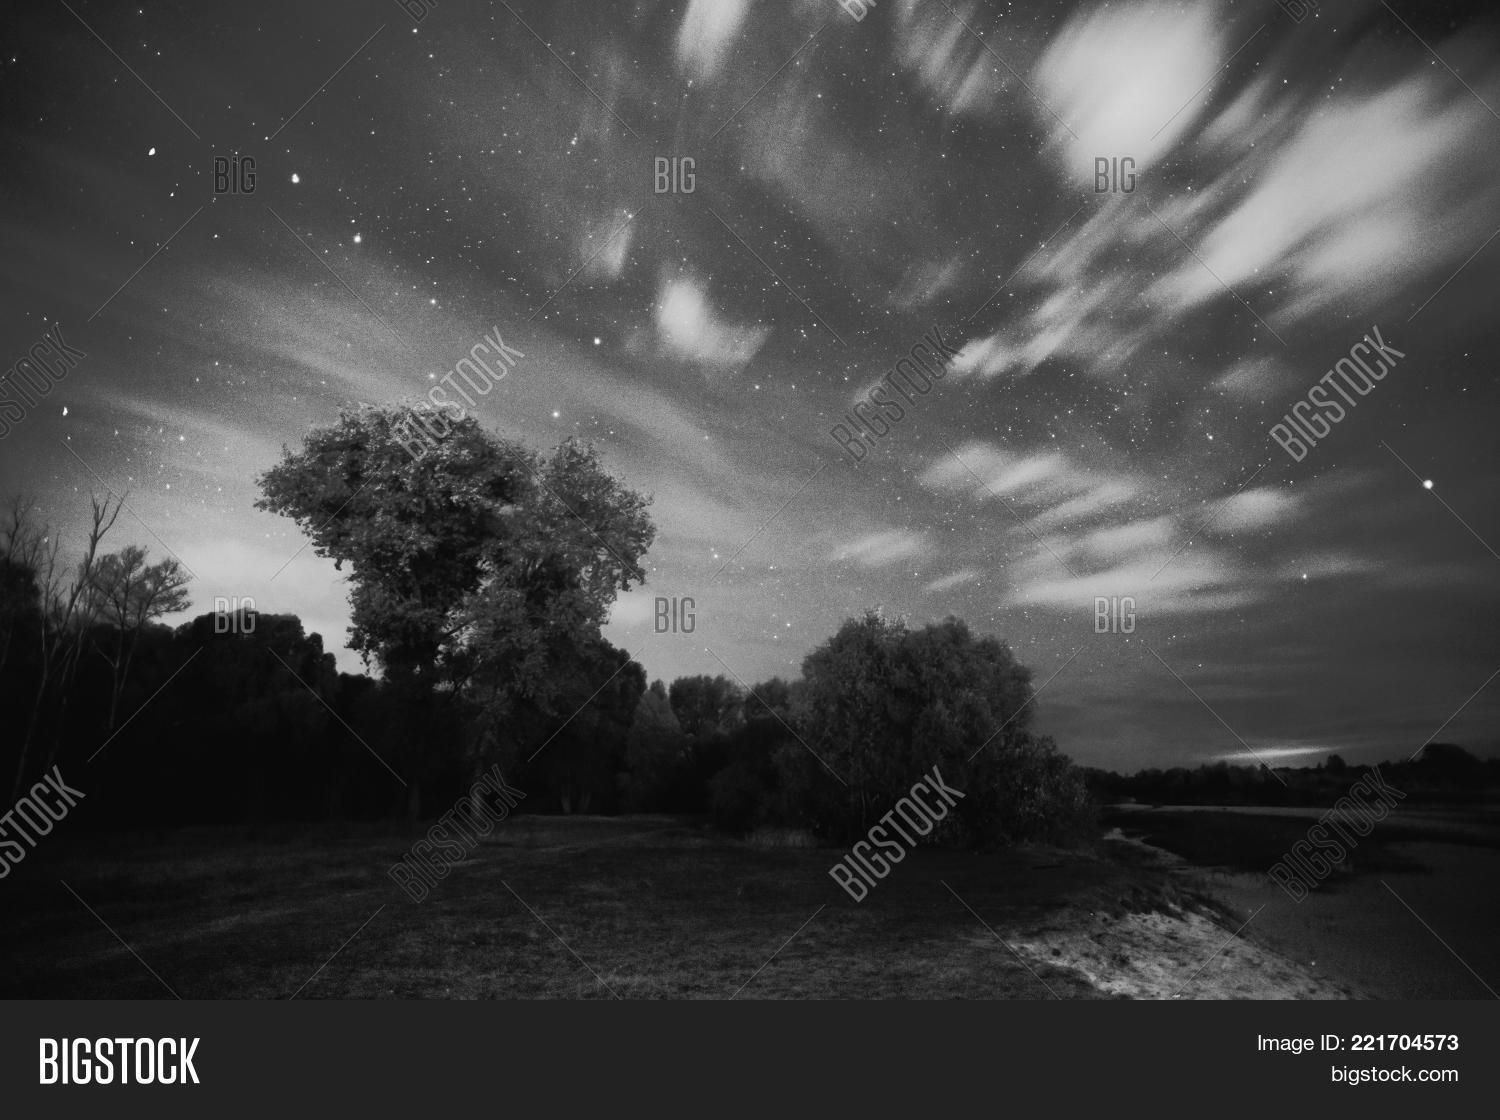 Beautiful night starry landscape black and white art monochrome photography black and white creative